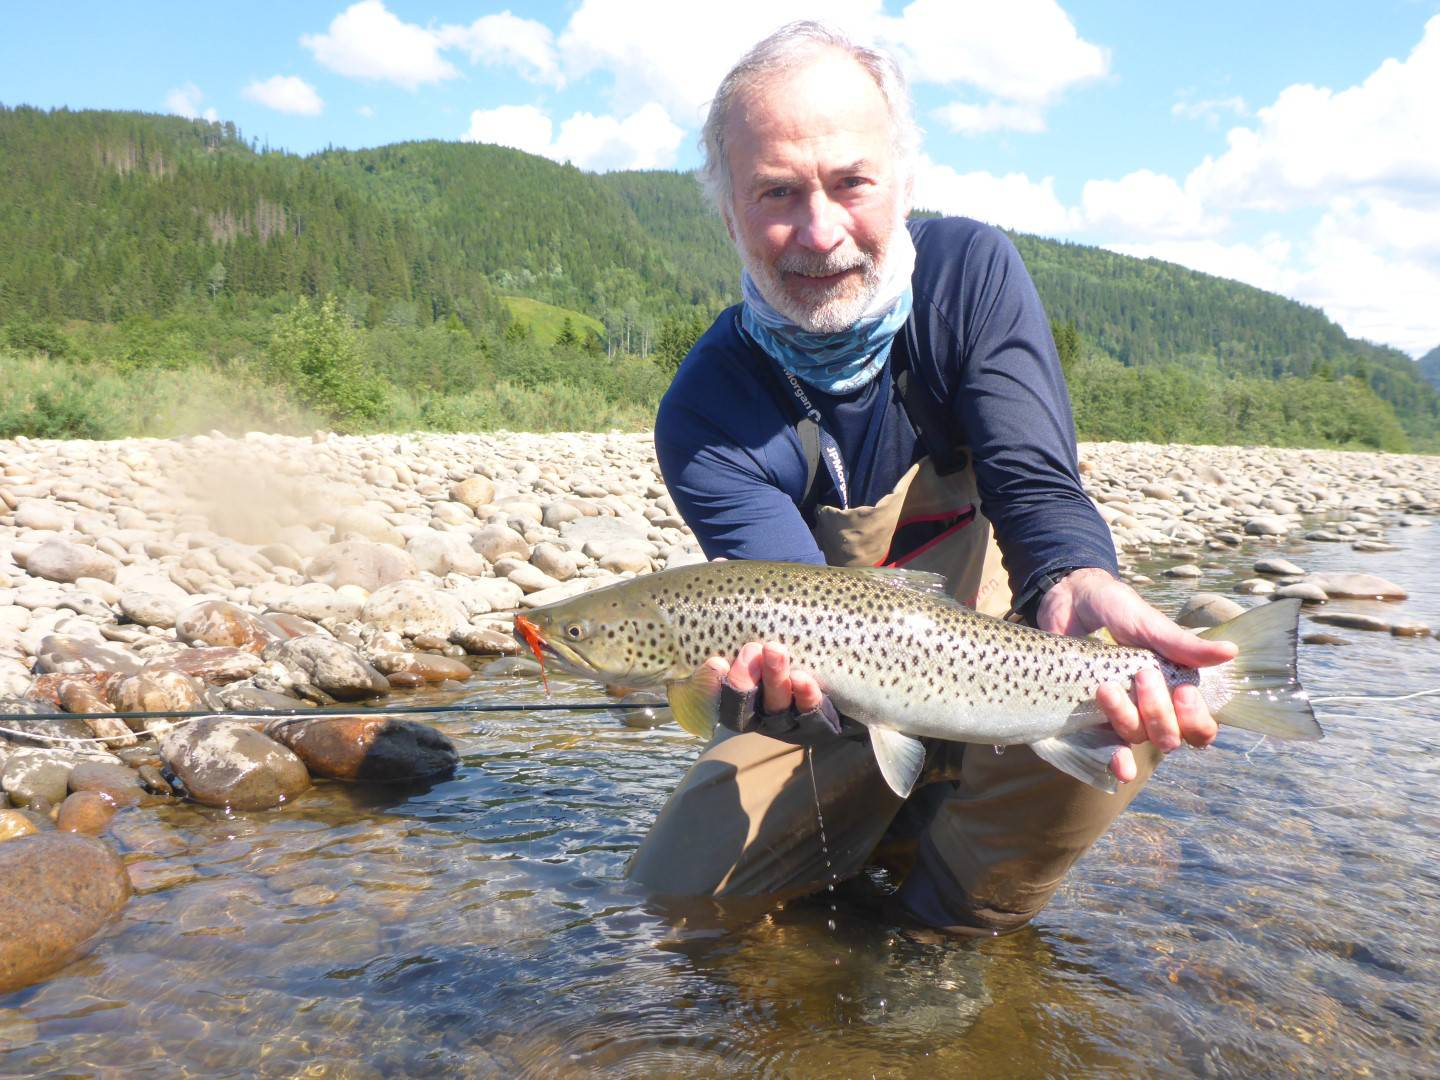 Gene with his seatrout from Beat A1.